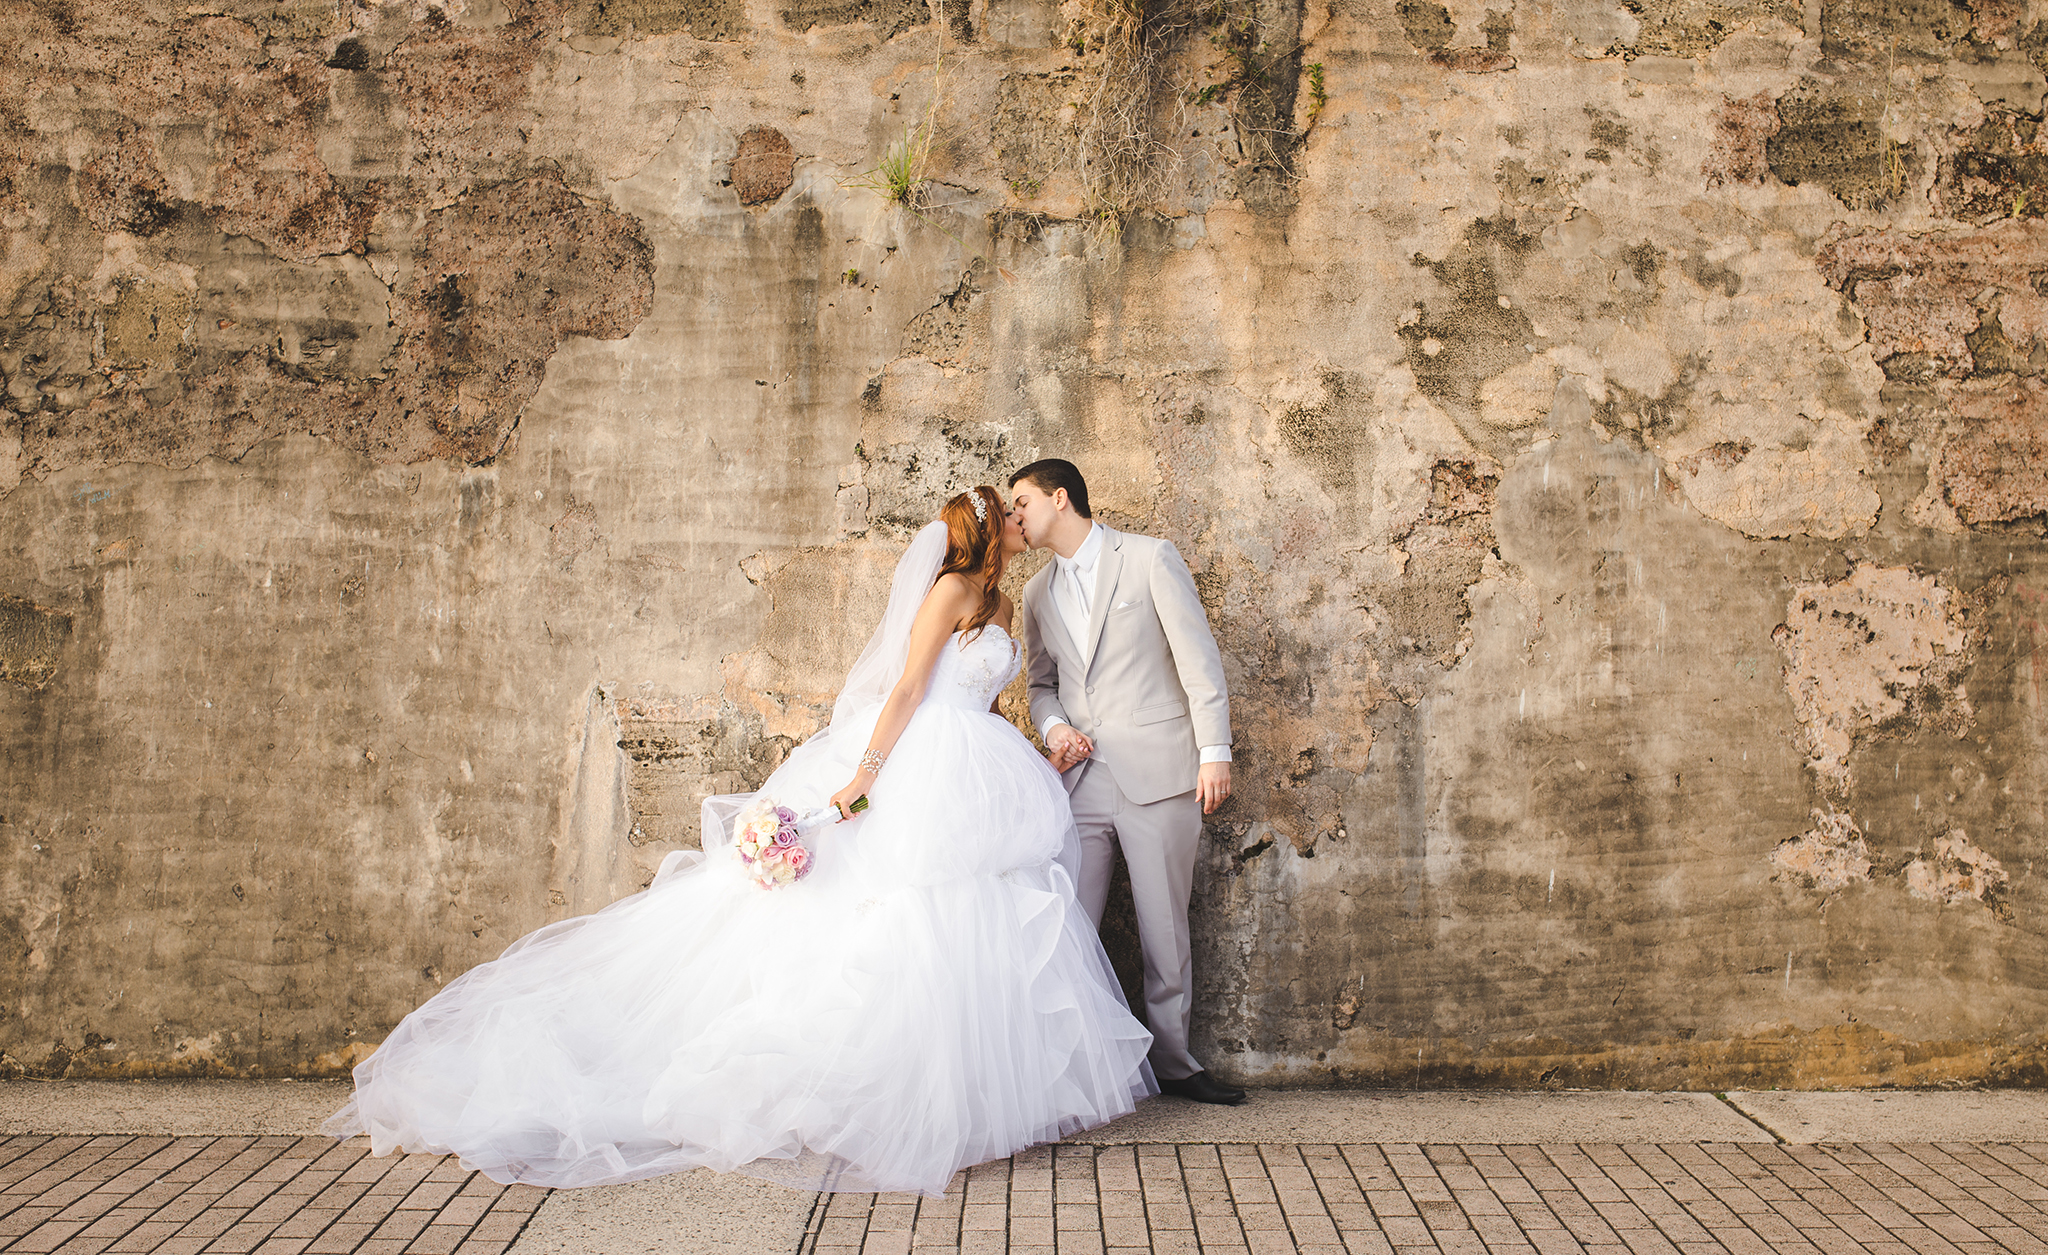 el-morro-wedding-photo